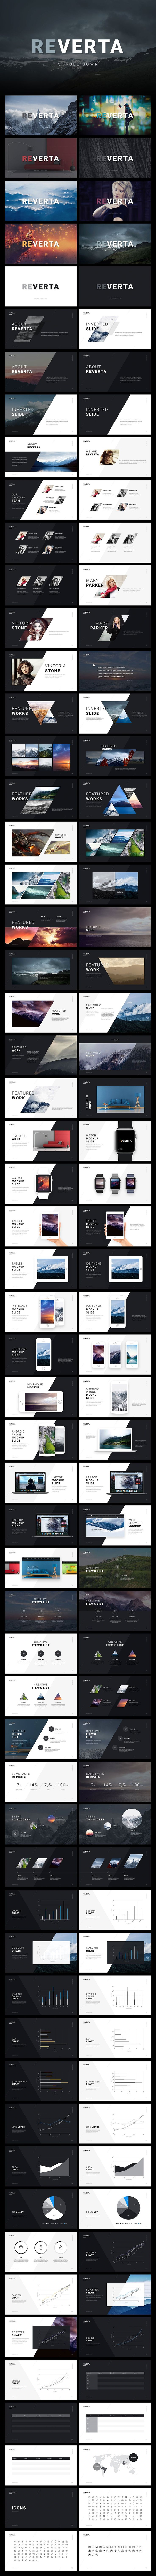 25 best powerpoint template images by christian arreola on reverta powerpoint template toneelgroepblik Image collections